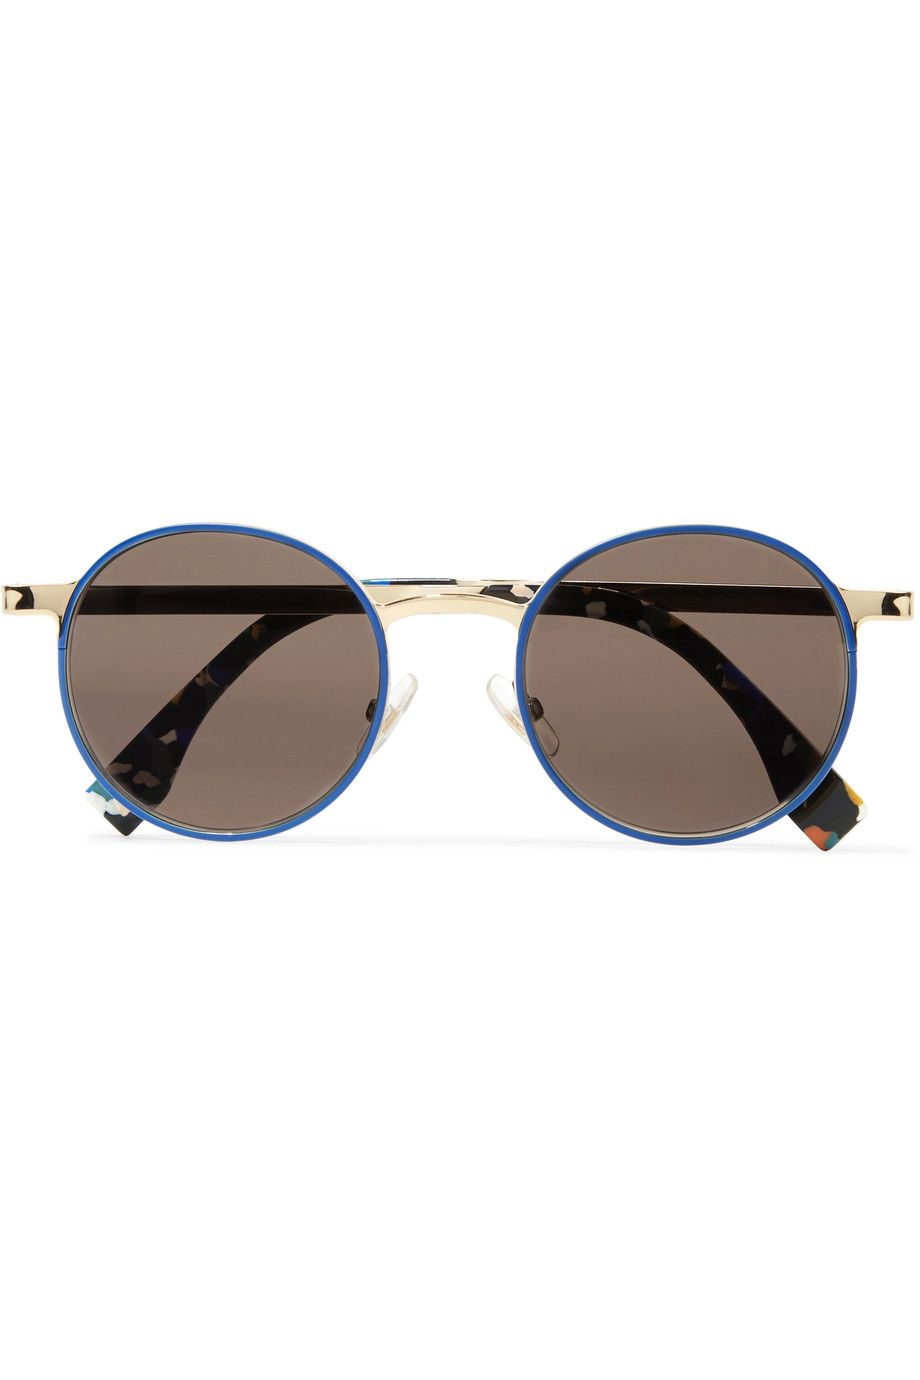 c3ddd79cd98 Shop on-sale Fendi Round-frame acetate and metal sunglasses. Browse other discount  designer Sunglasses   more on The Most Fashionable Fashion Outlet